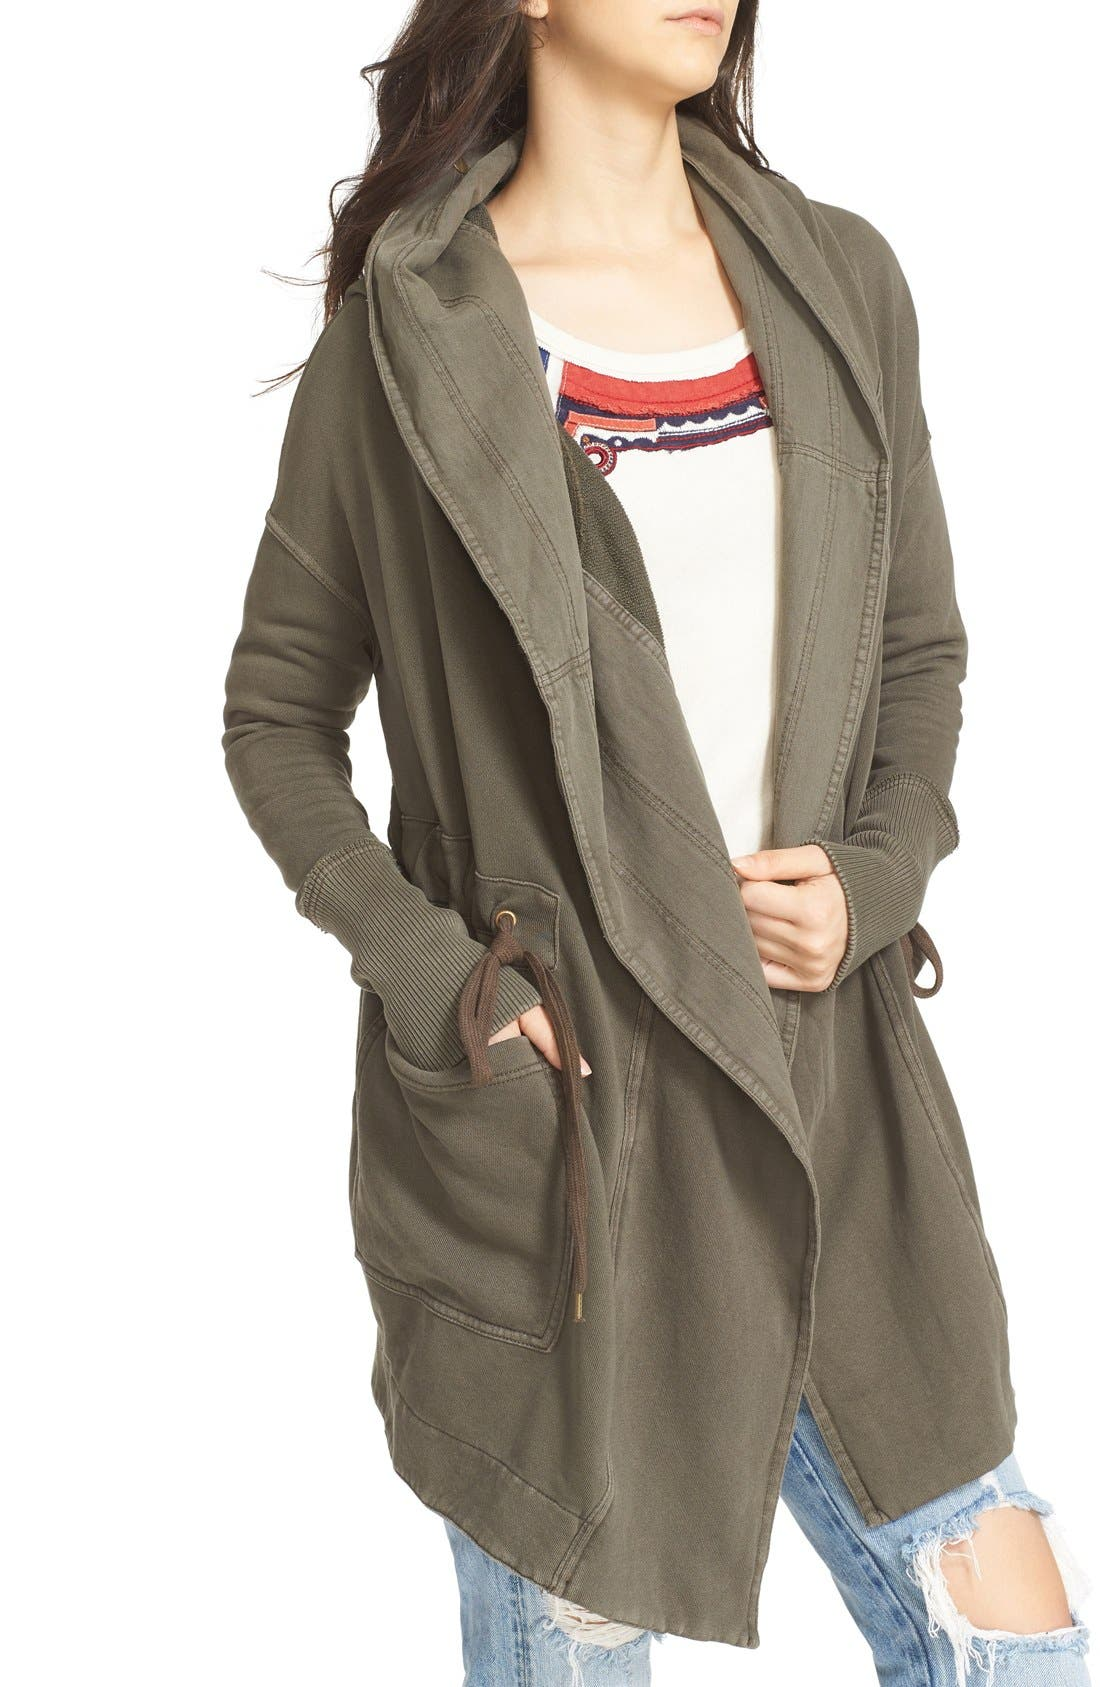 Brentwood Cotton Cardigan,                             Alternate thumbnail 5, color,                             350